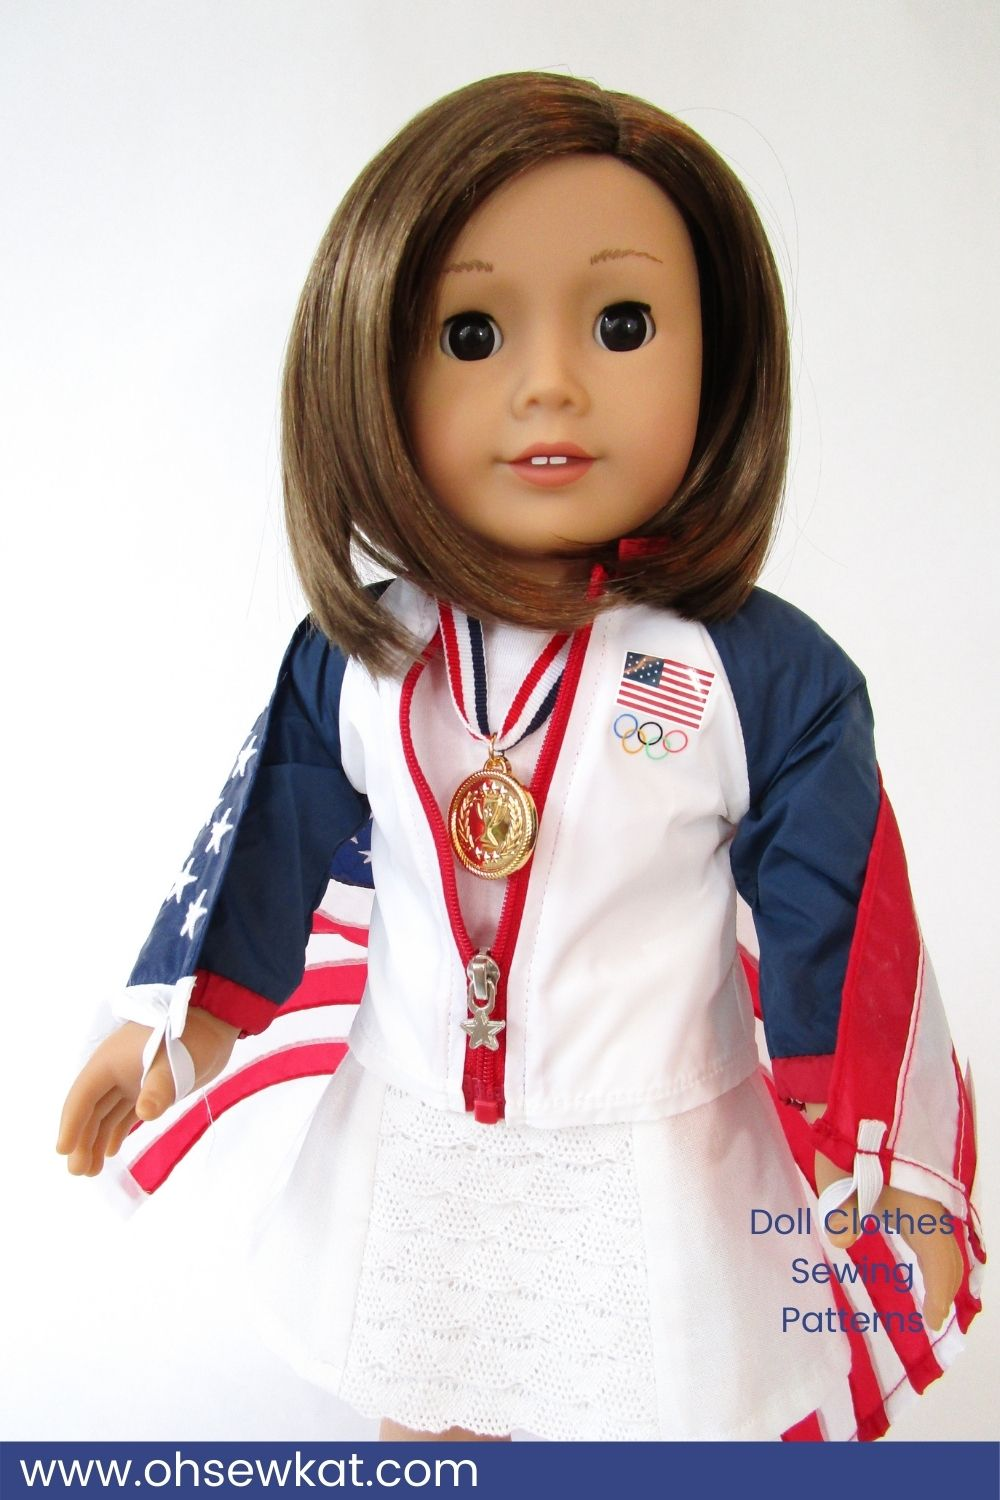 American Girl Outfit Review- Team USA Medal Ceremony Set. OhSewKat review of the jacket, flag, olympic medals outfit produced and sold for American Girl. Diy your own doll clothes with easy sewing patterns for 18 inch dolls by Oh Sew Kat!